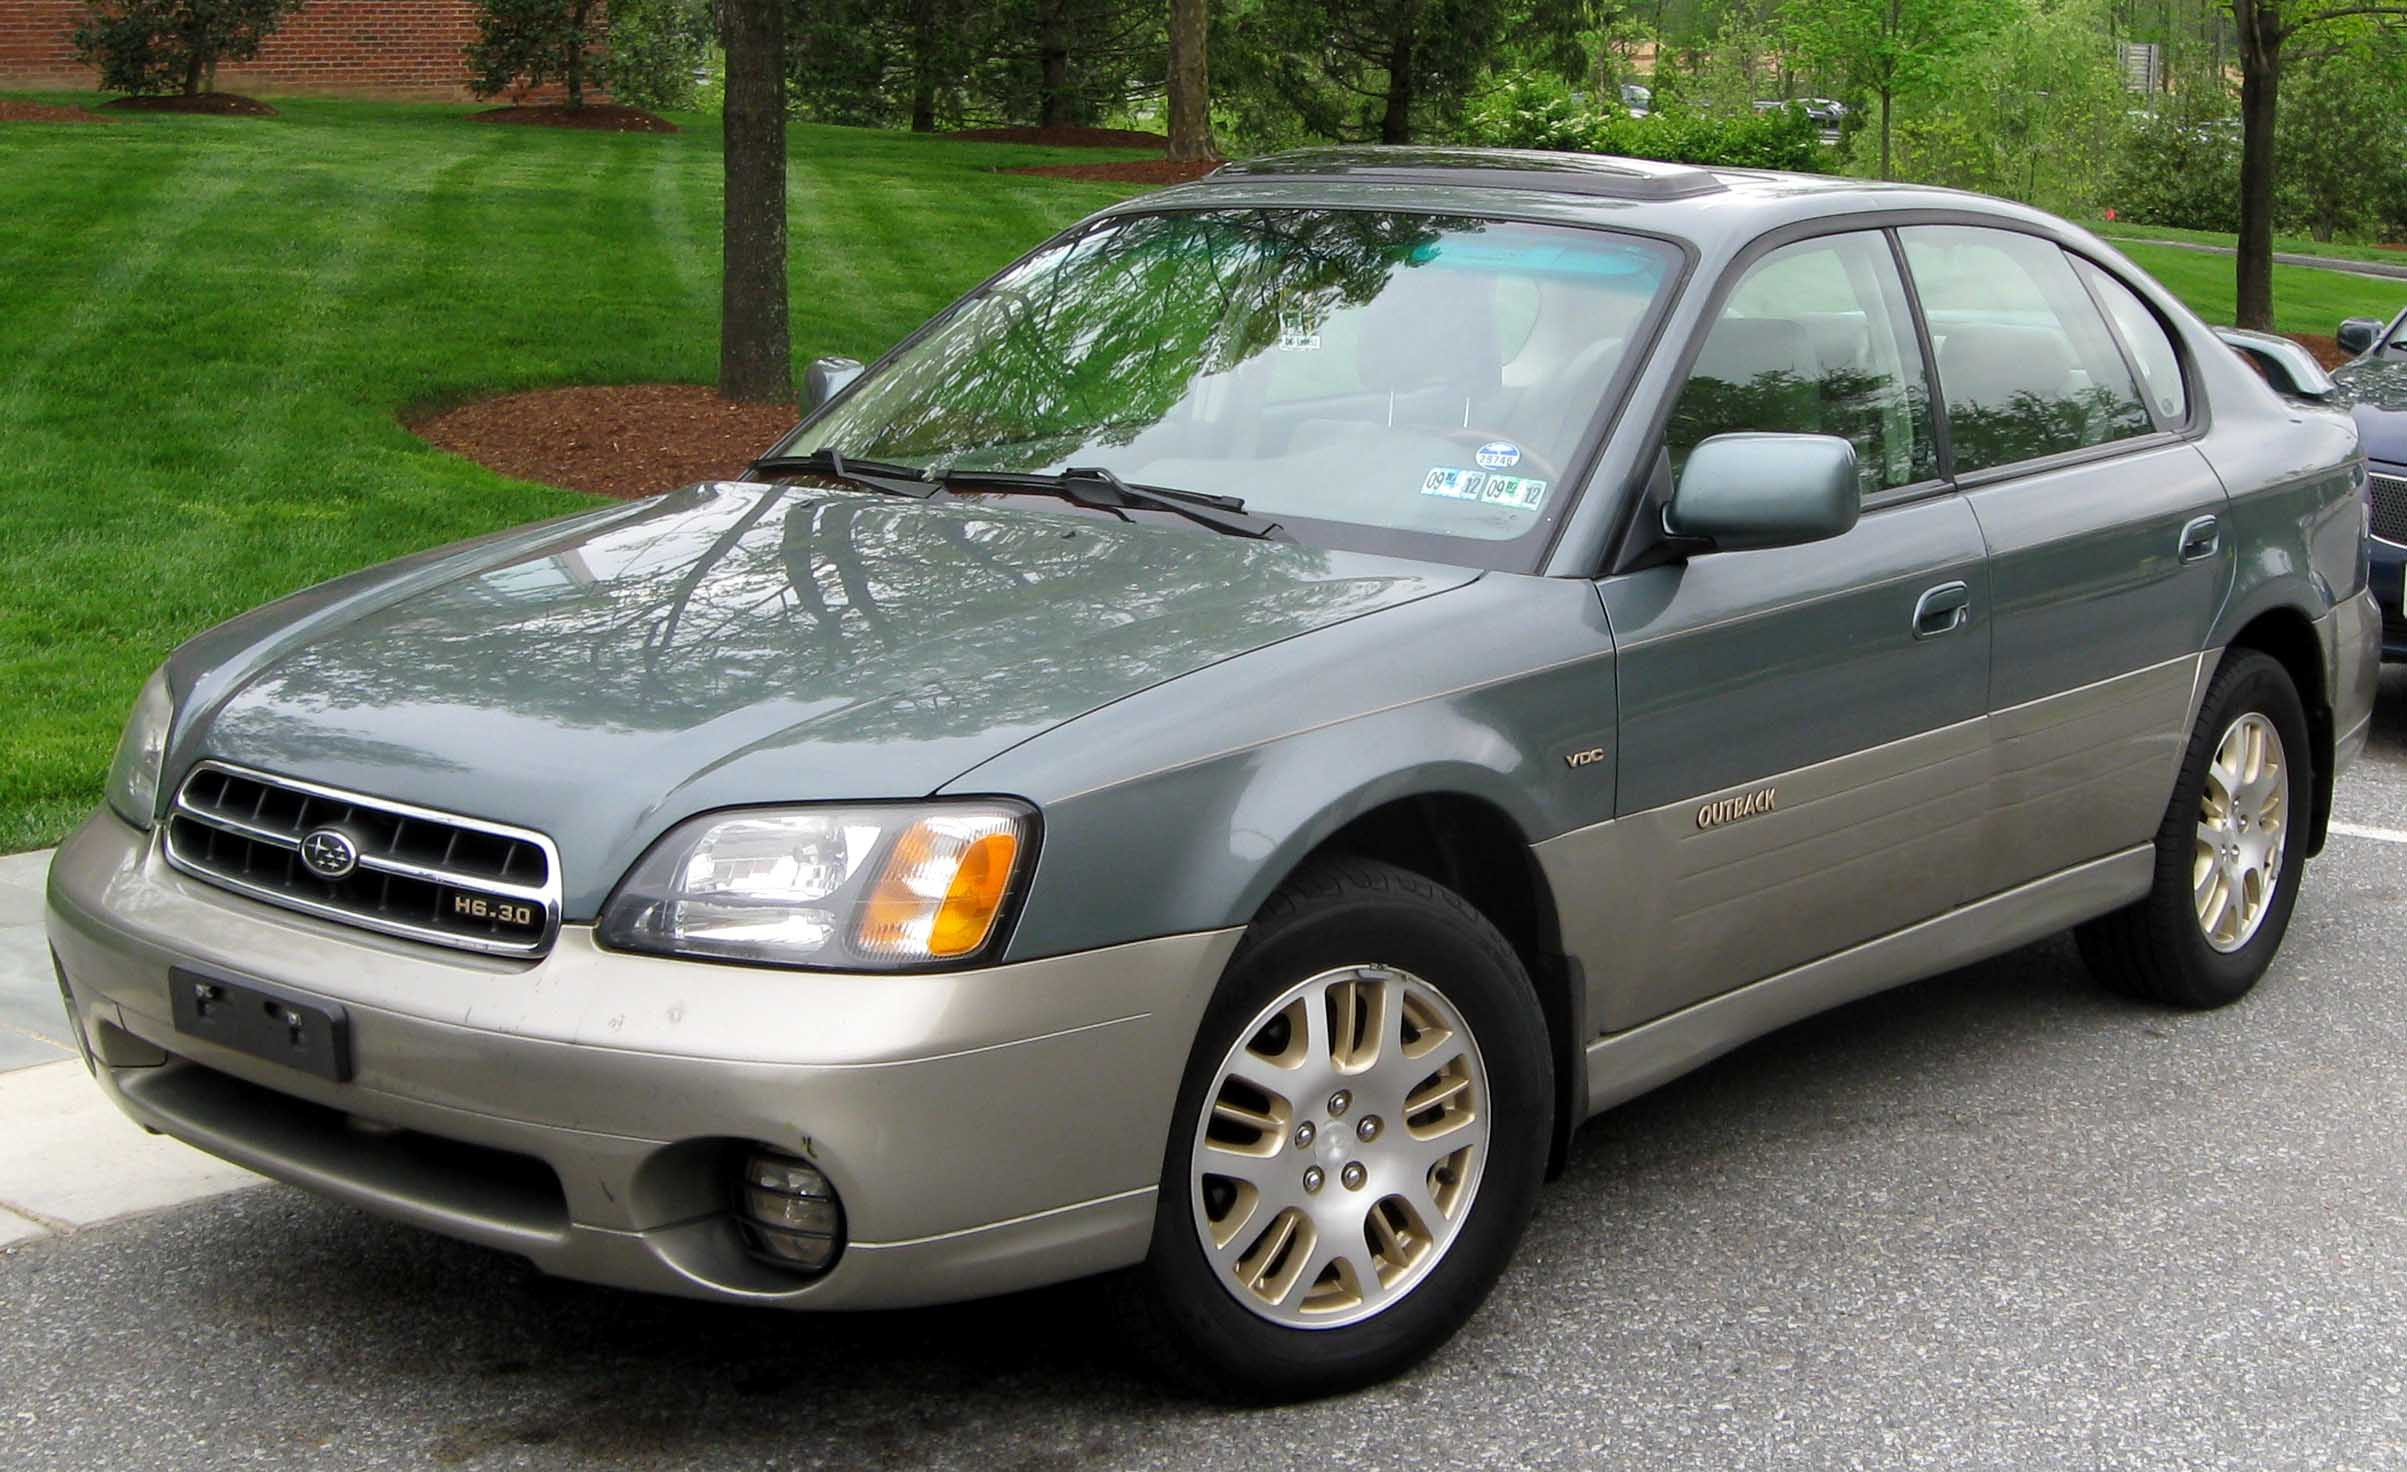 2001 Subaru Outback Custom >> subaru outback sedan 2017 - ototrends.net